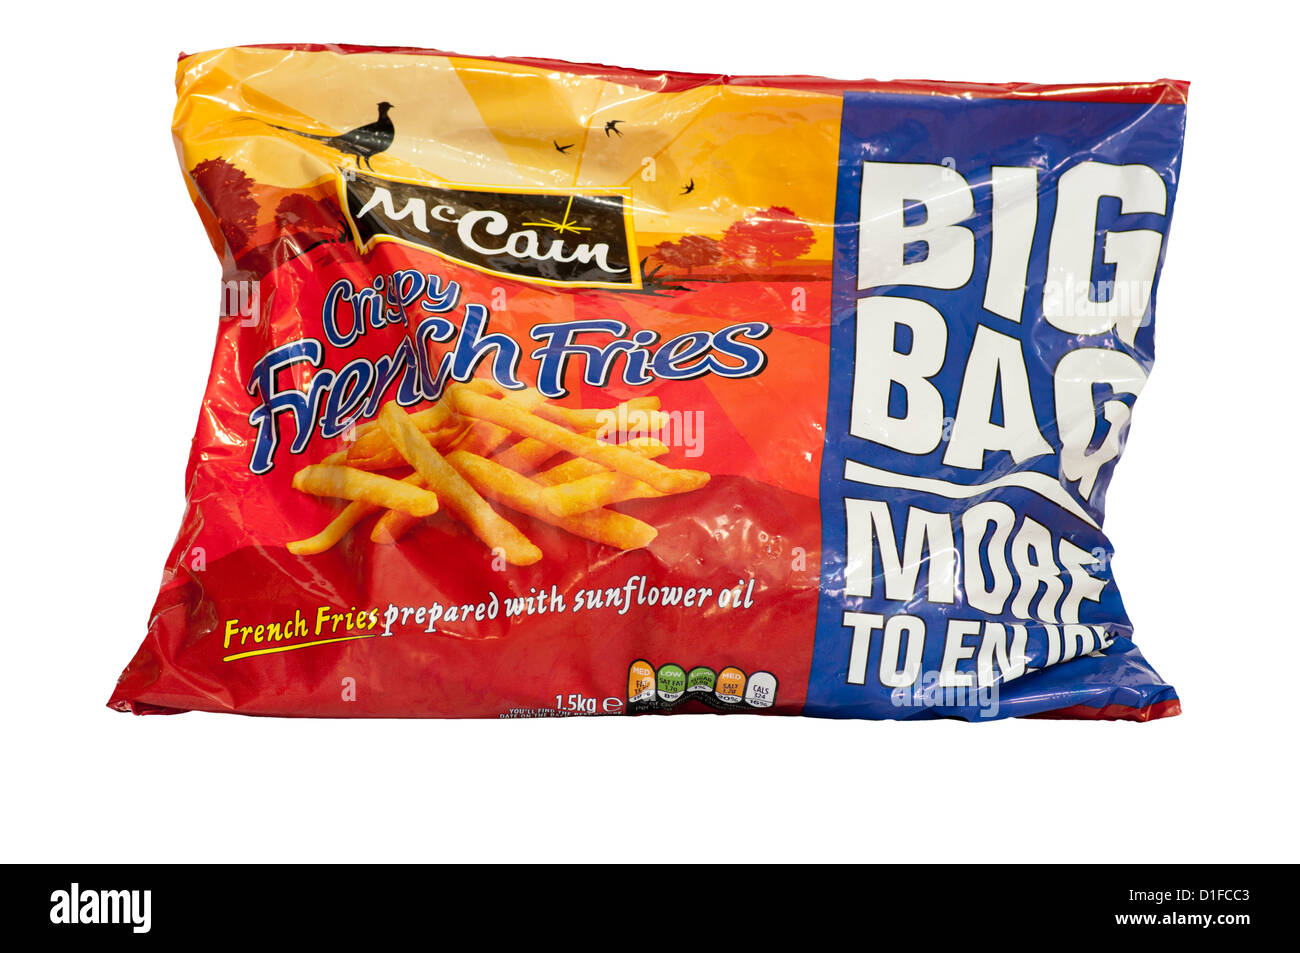 Bag Of McCain French Fries - Stock Image